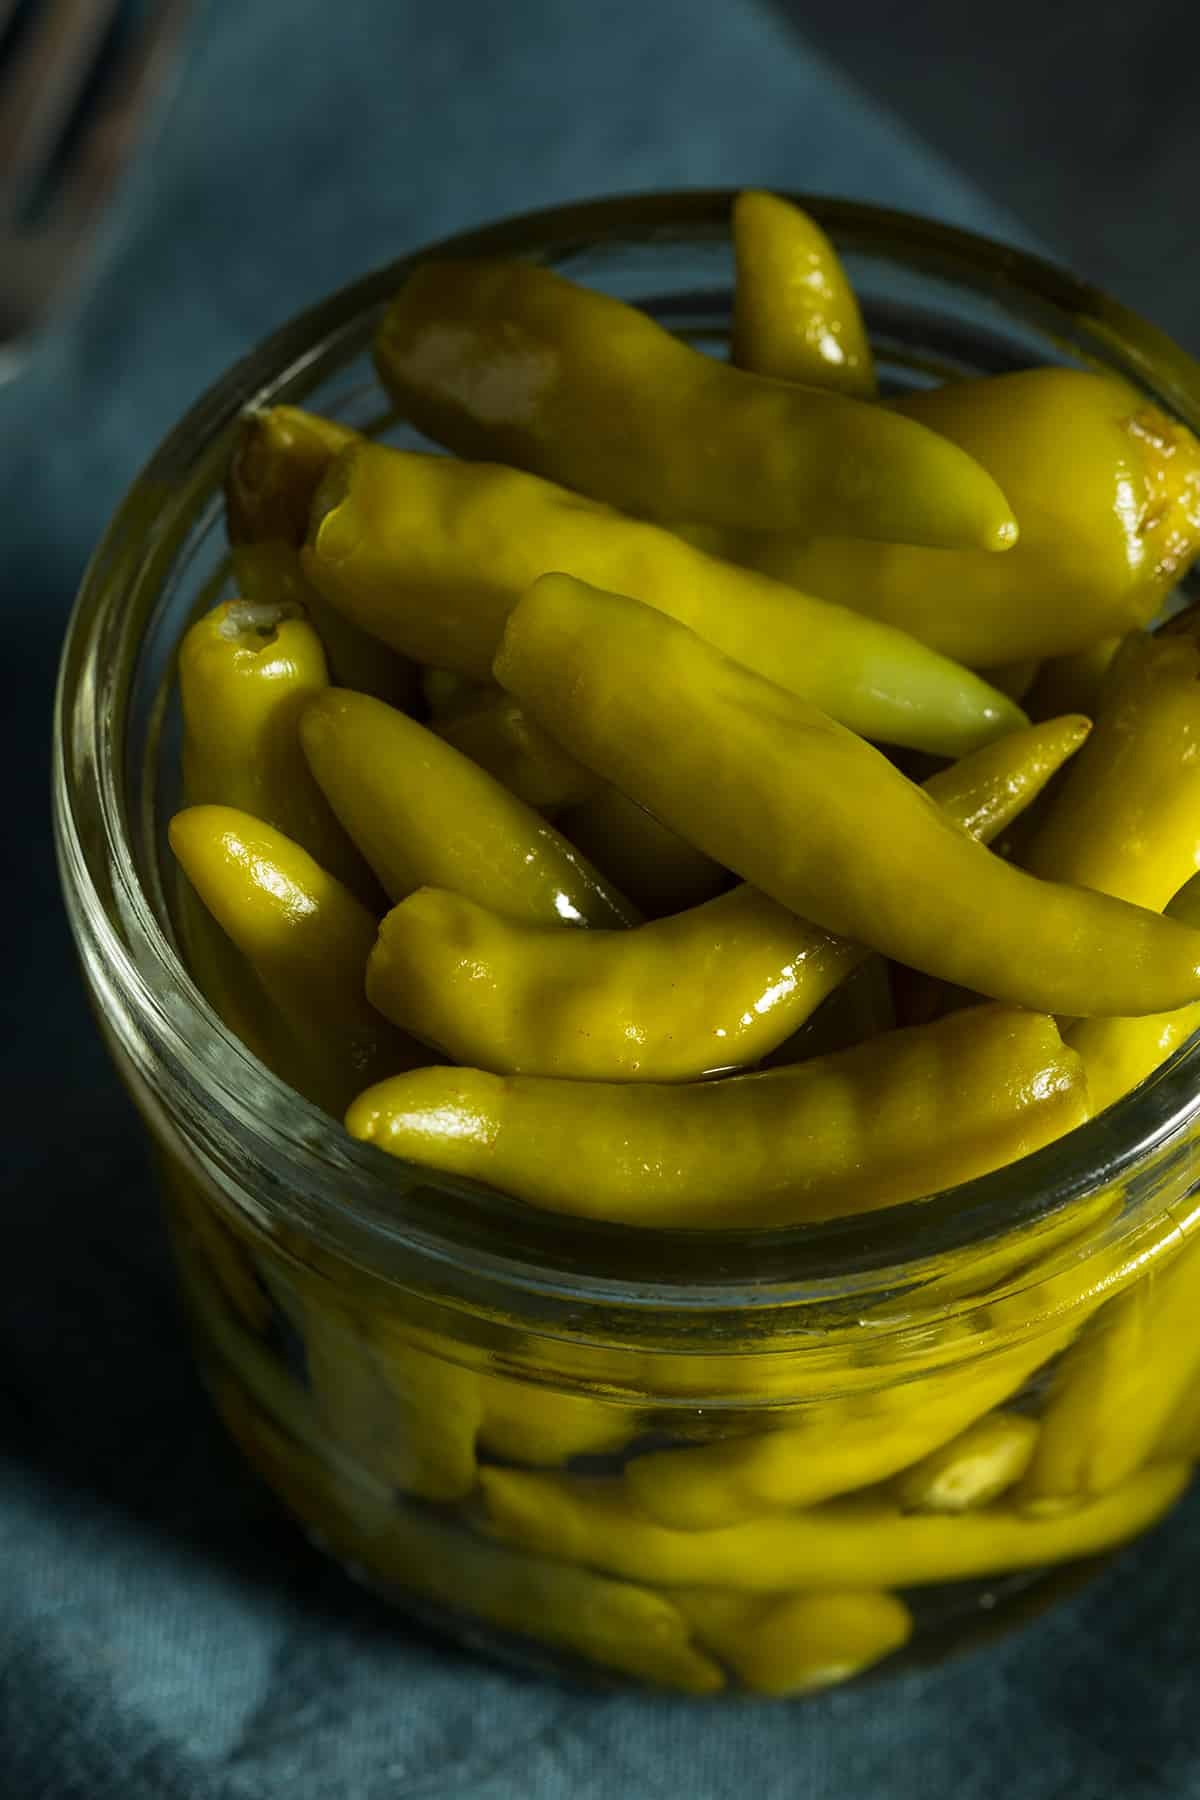 Preparing and Canning Fermented and Pickled Foods – Pickling Safety Information